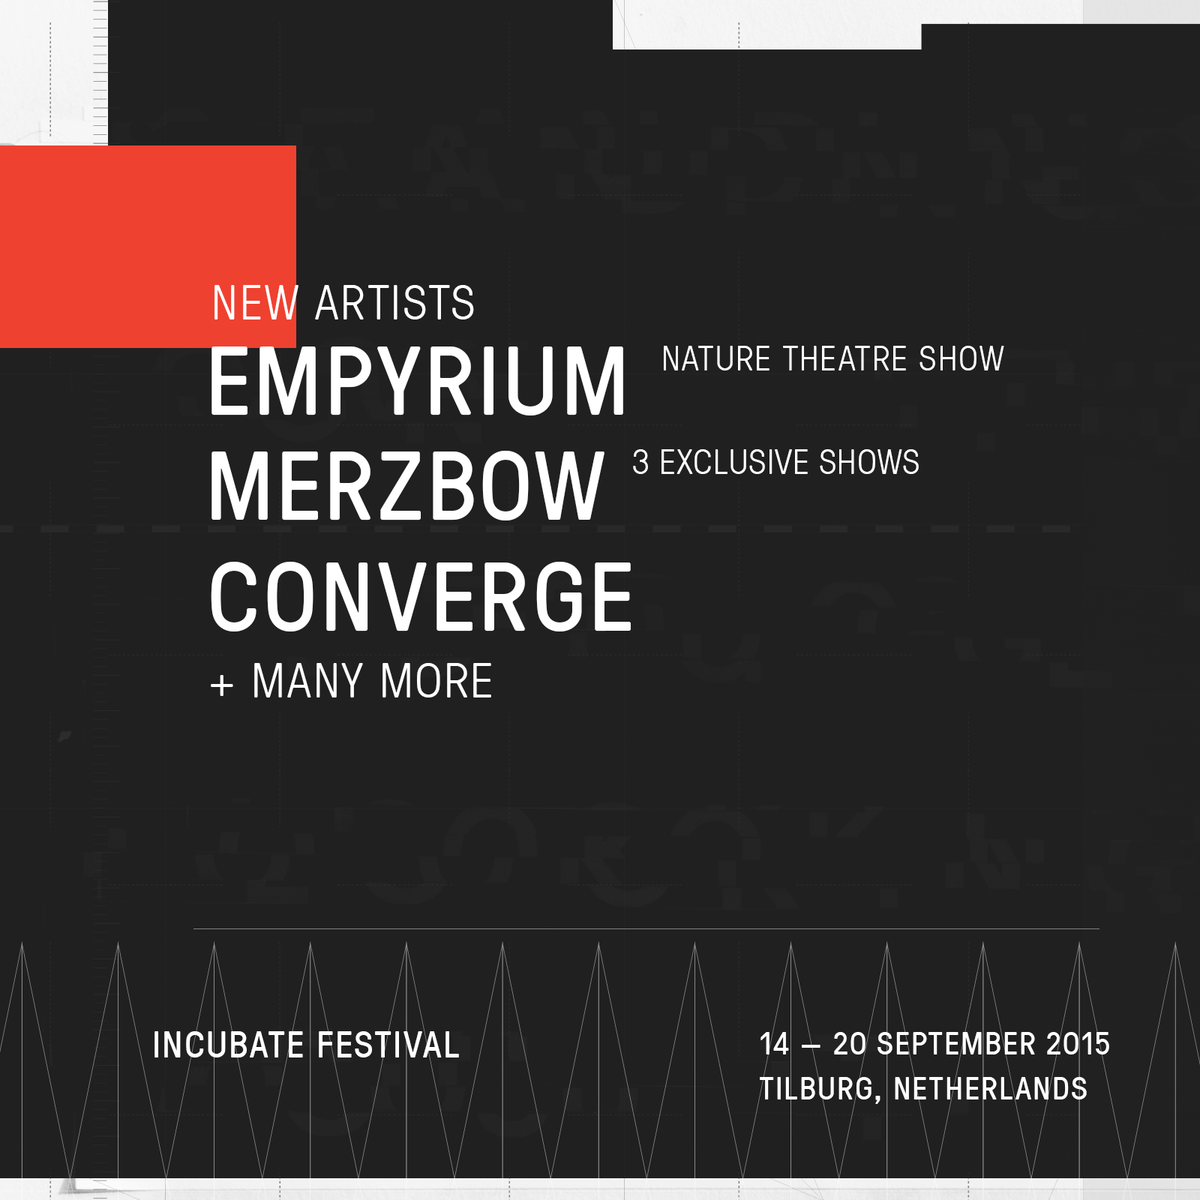 We've added @convergecult, @merzbowofficial, and Empyrium + 22 more for #incu15. Check out: http://t.co/IZyQUZc1IK http://t.co/srjEf1ue5k